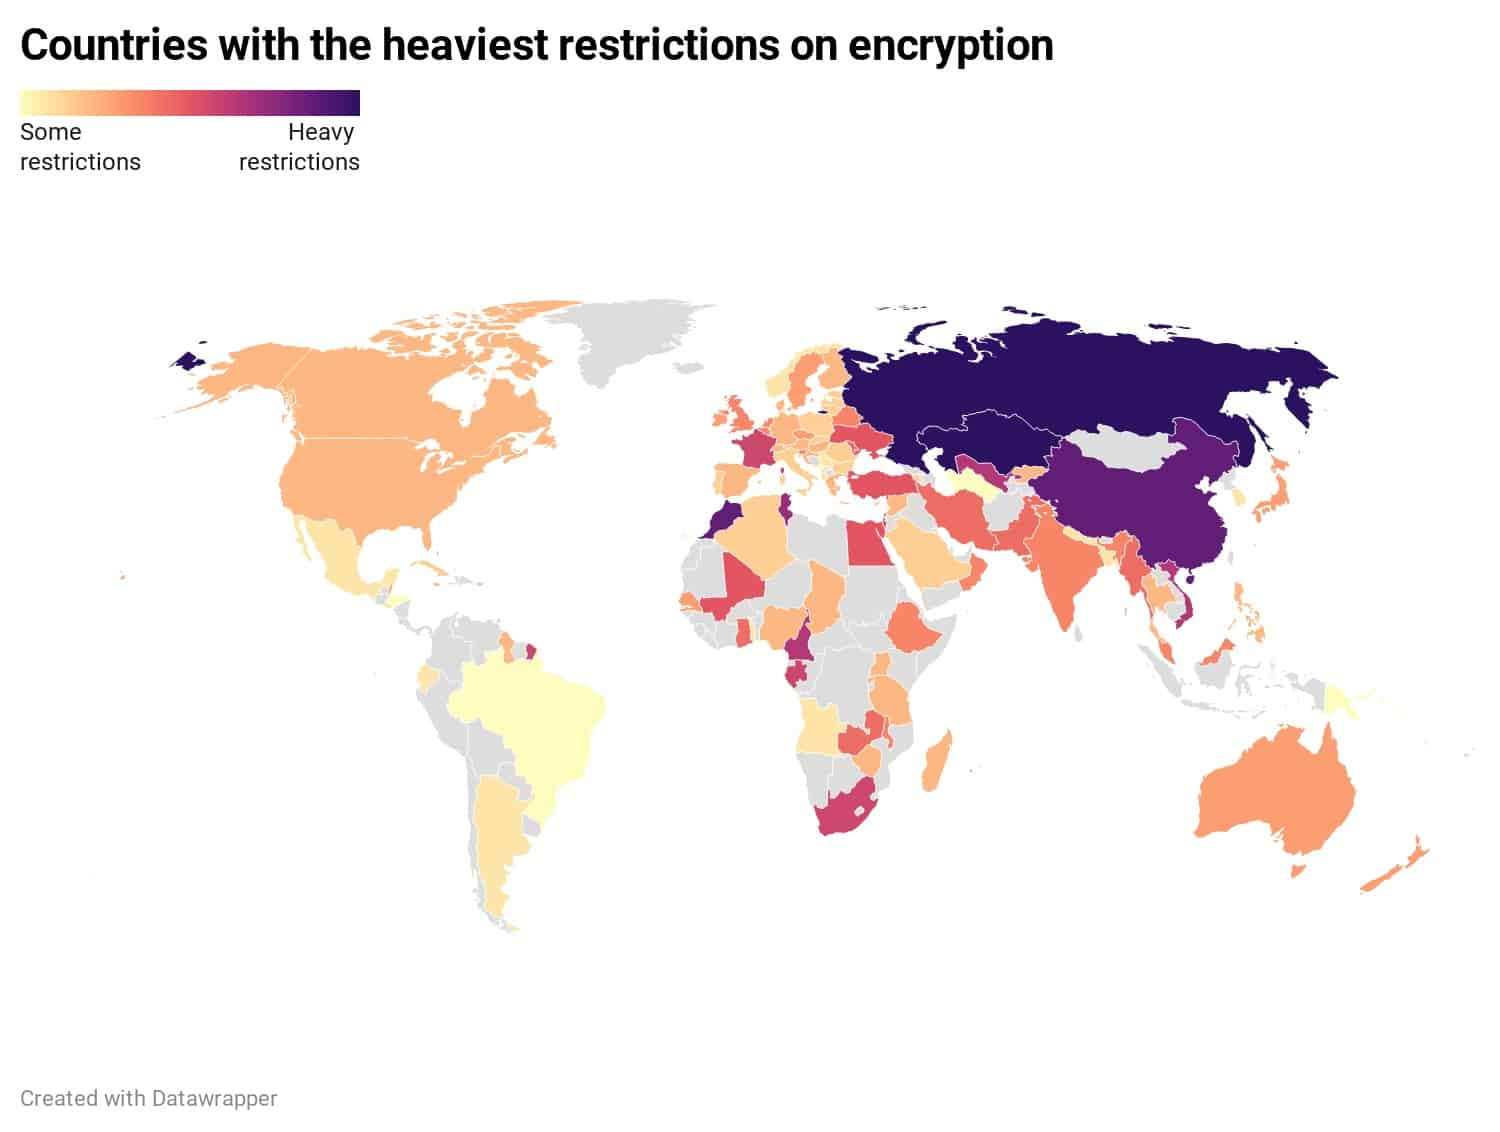 Countries with the heaviest restrictions on encryption